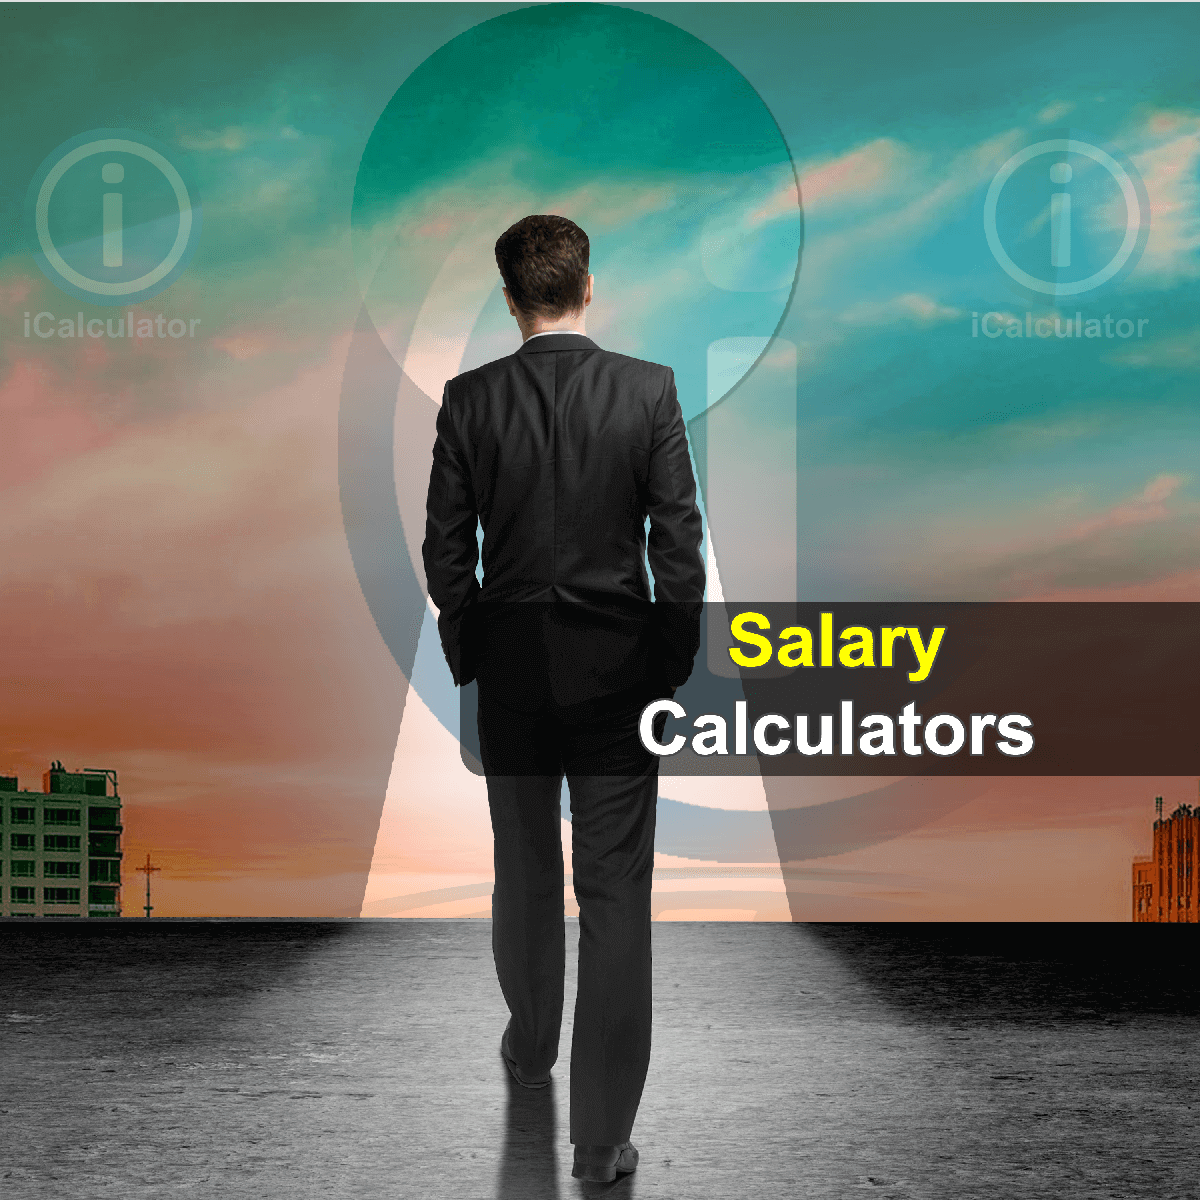 Salary Calculators. This image shows an employee considering the calculations involved in payroll deductions and calculating their annual salary using the salary calculators provided by iCalculator.